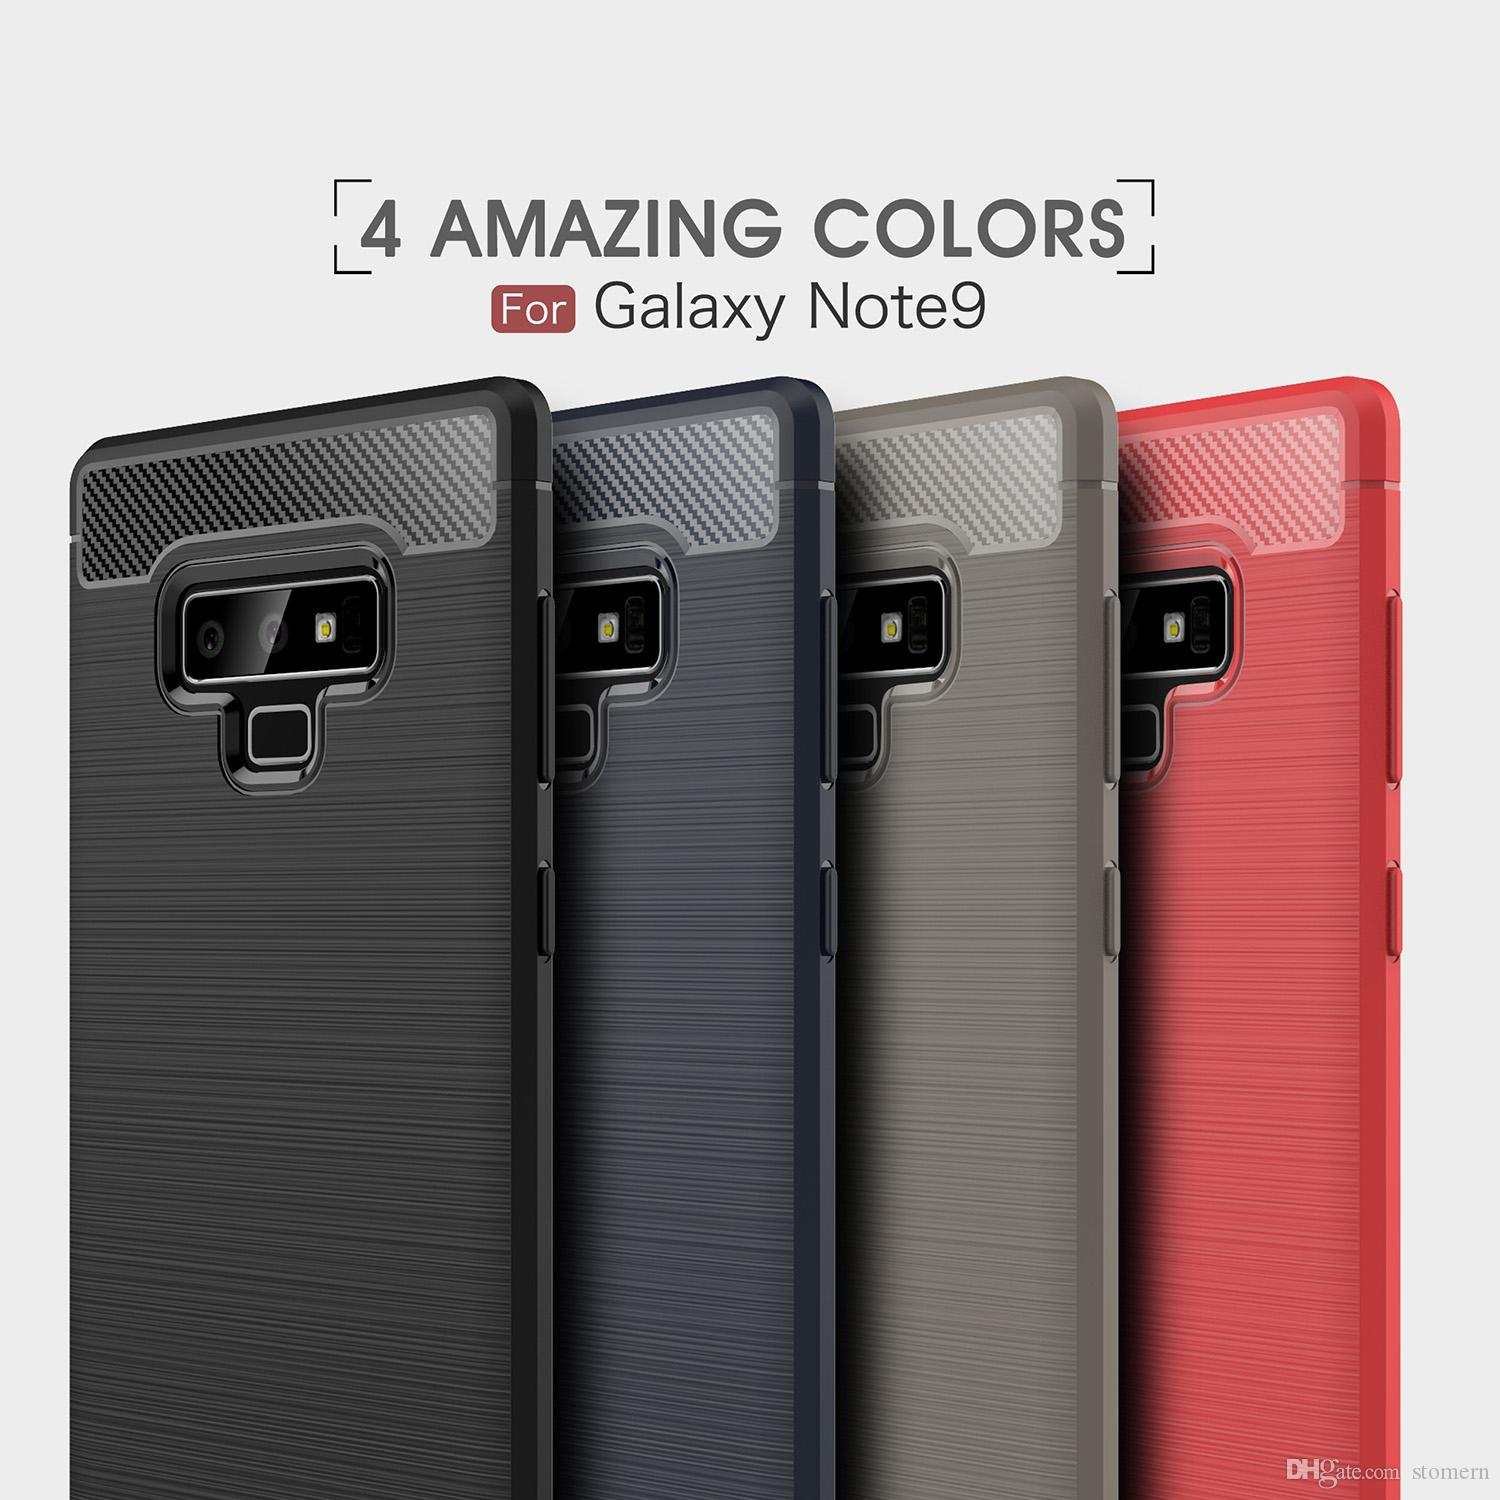 Carbon Fiber Case For Samsung Galaxy Note 9 8 S8 S9 Plus S7 Edge S6 Brushed Silicone Soft Rubber Back Cover Slim Armor Rugged Shell Case For Samsung Note